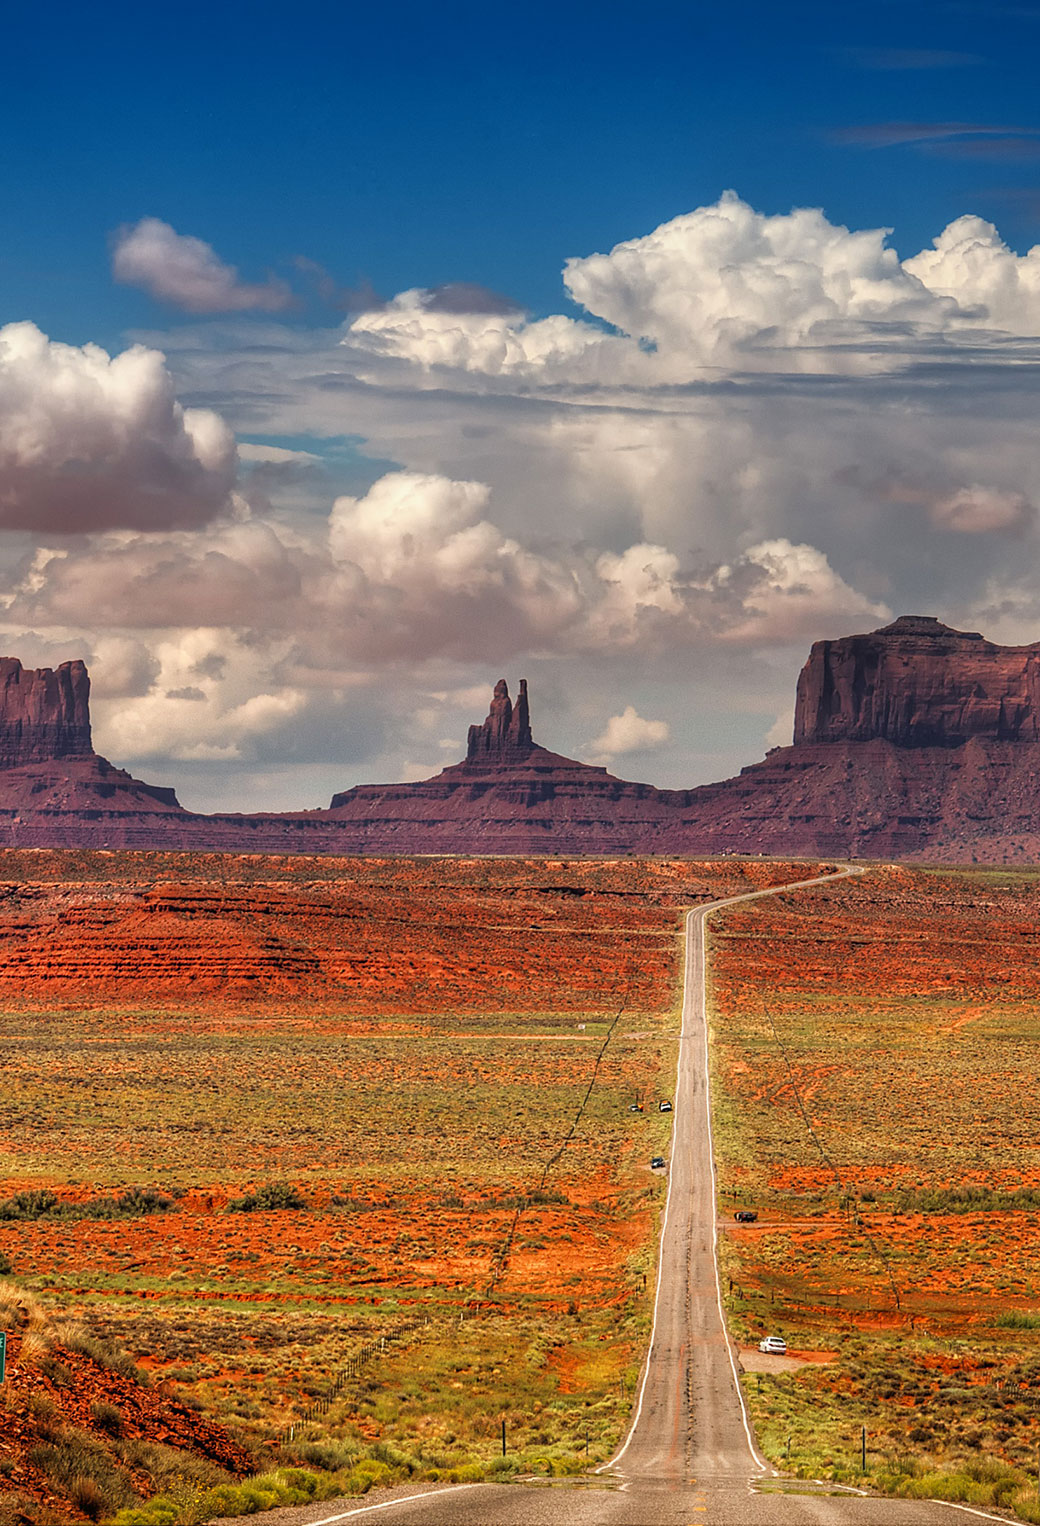 Native American Wallpaper Iphone Death Valley Wallpaper For Iphone X 8 7 6 Free